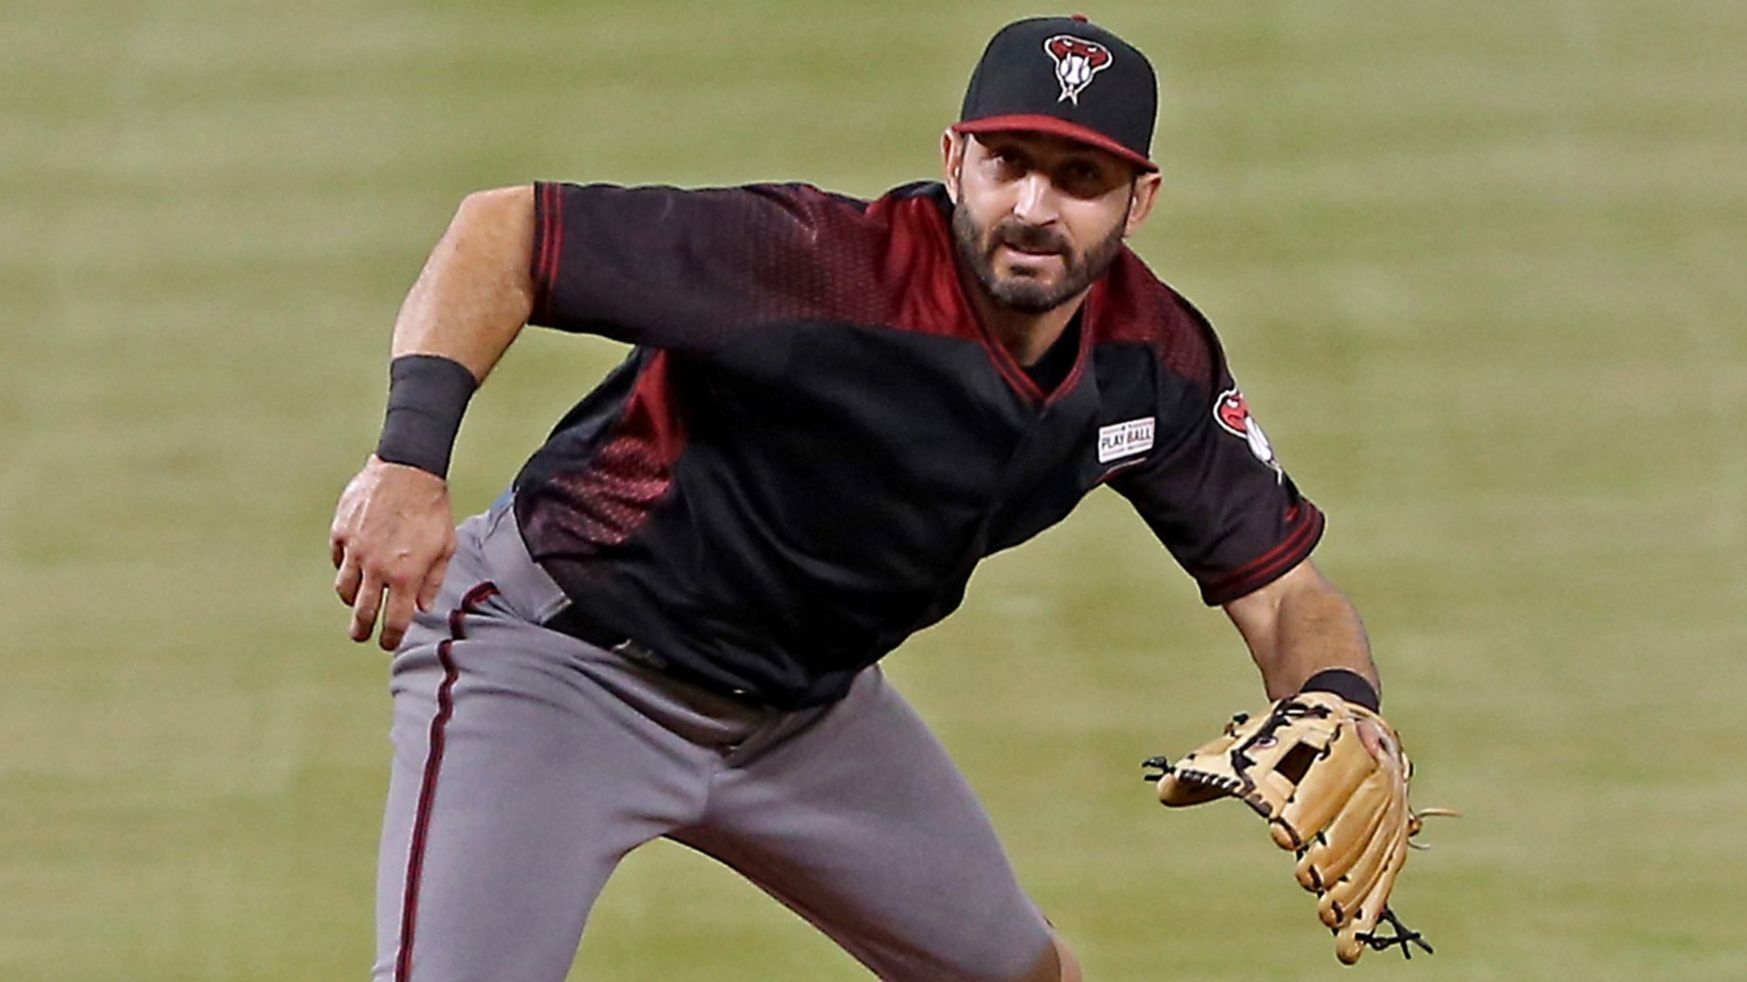 'The Cubs got the perfect guy': Daniel Descalso brings leadership skills and versatility to Wrigley Field